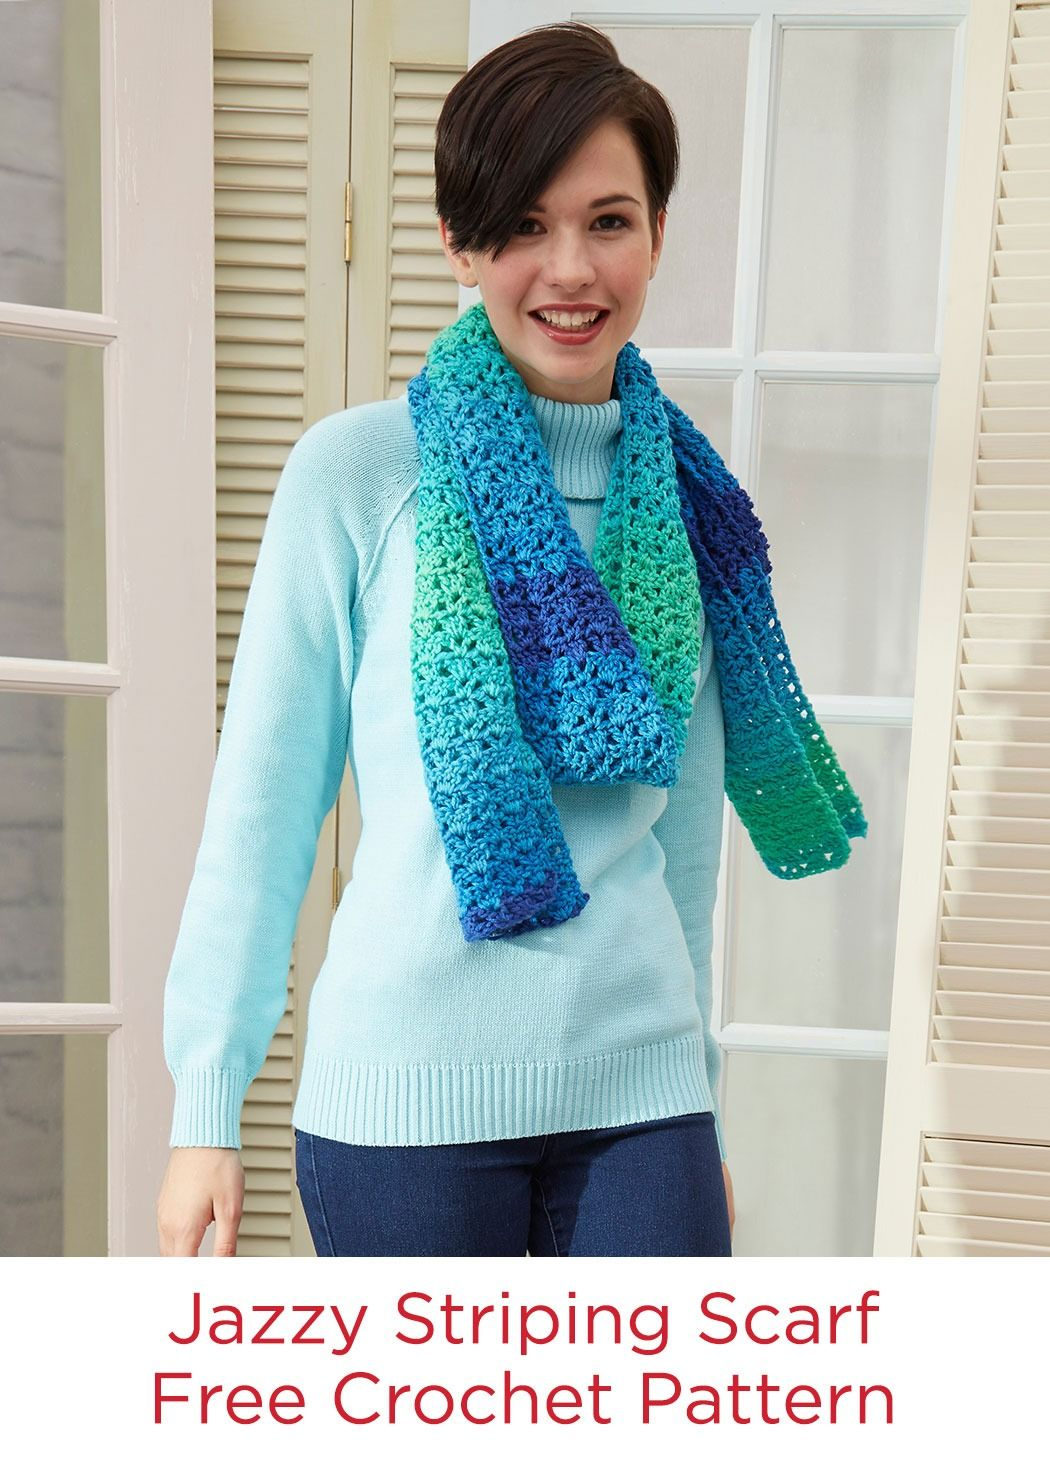 Jazzy Striping Scarf Free Crochet Pattern in Red Heart Super Saver ...